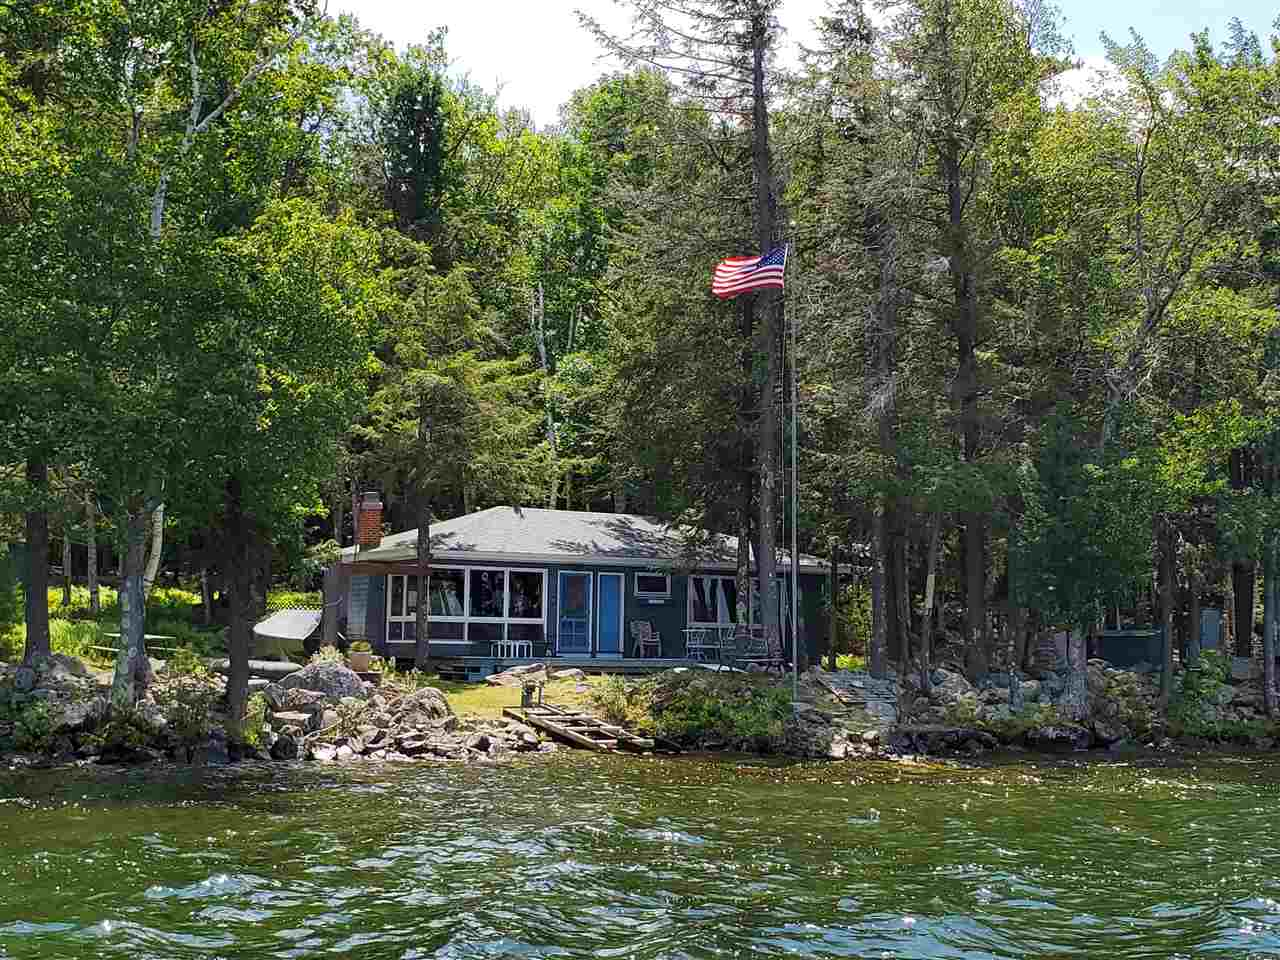 MLS 4741942: 24 Welch Island, Gilford NH